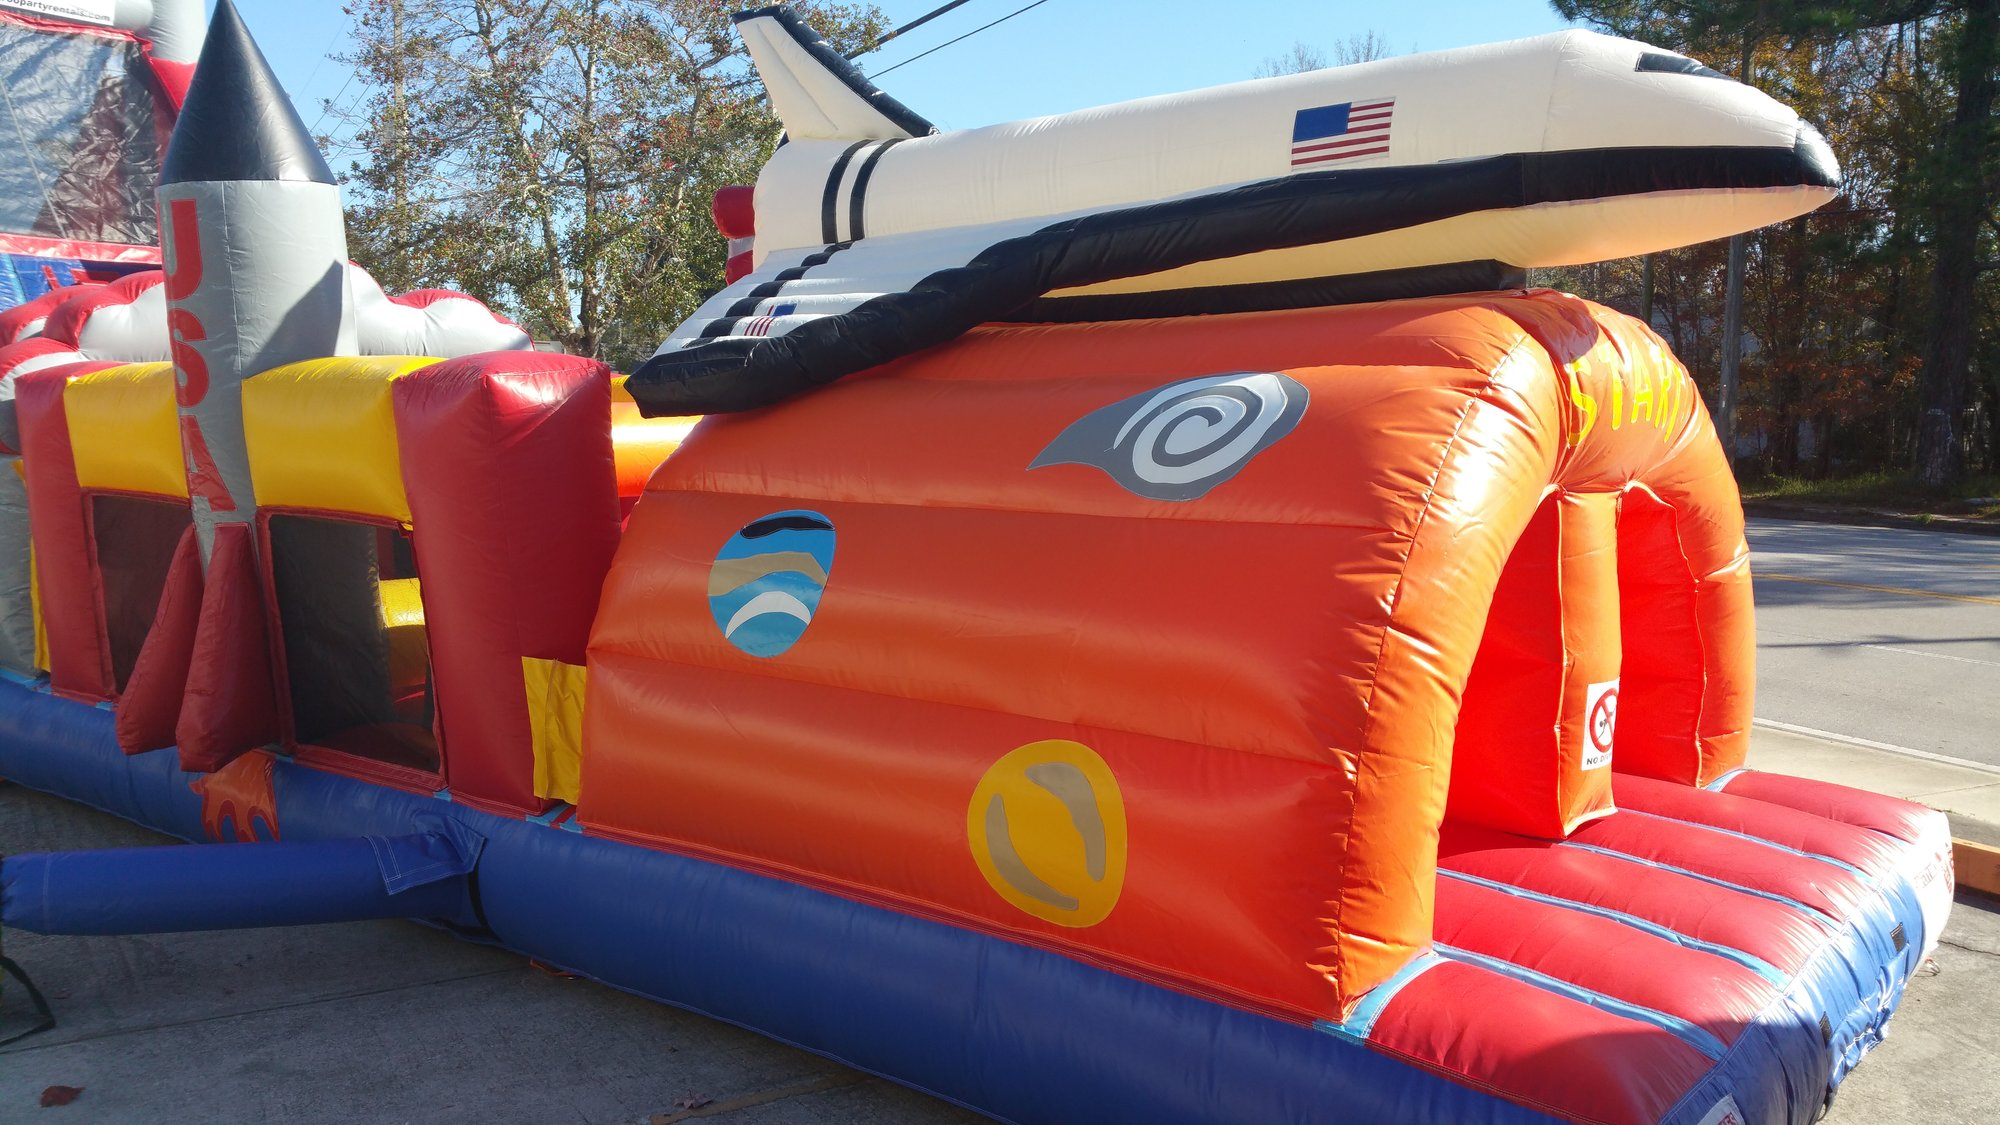 USA Toddler Obstacle Bounce House Hopper  image - Jacksonville, FL